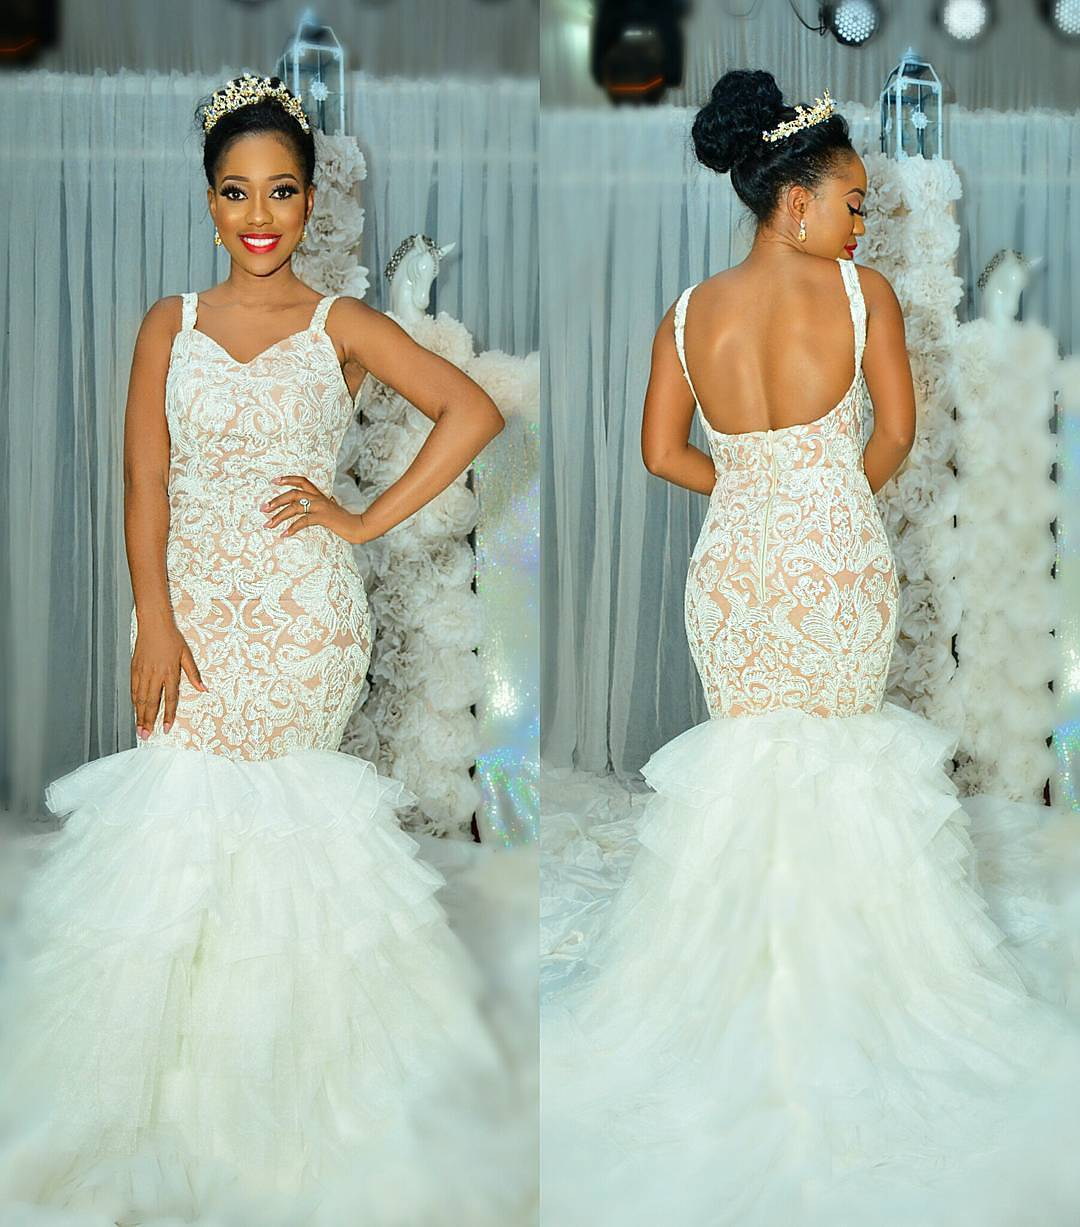 Sexy Wedding Reception Dresses | A Million Styles Africa